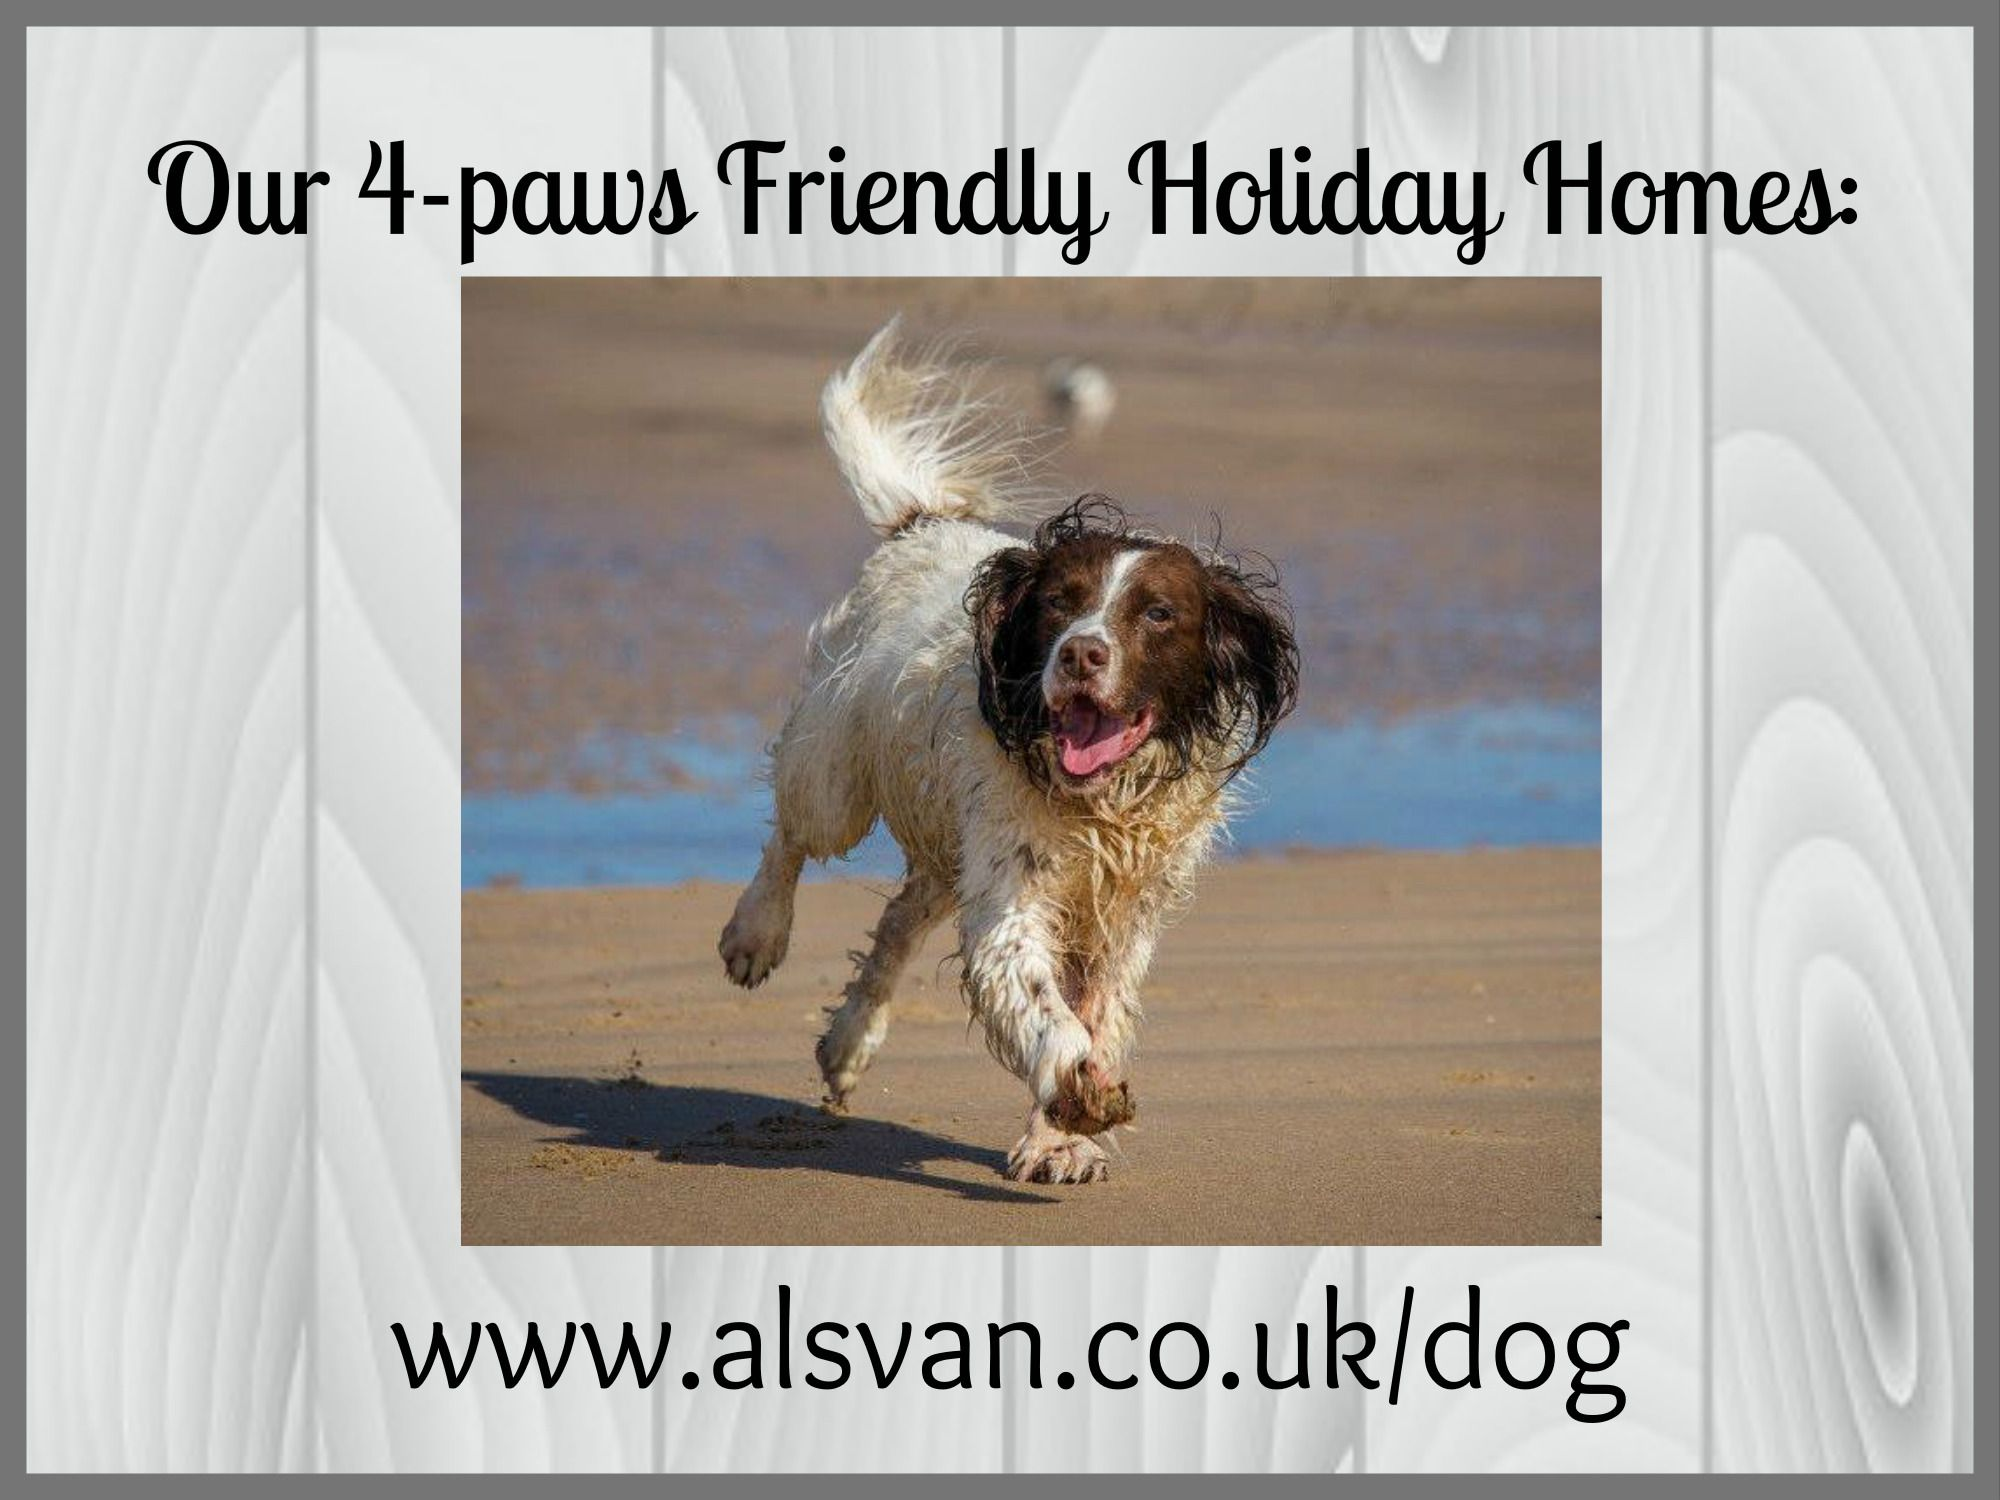 dog-friendly holidays with AVMR